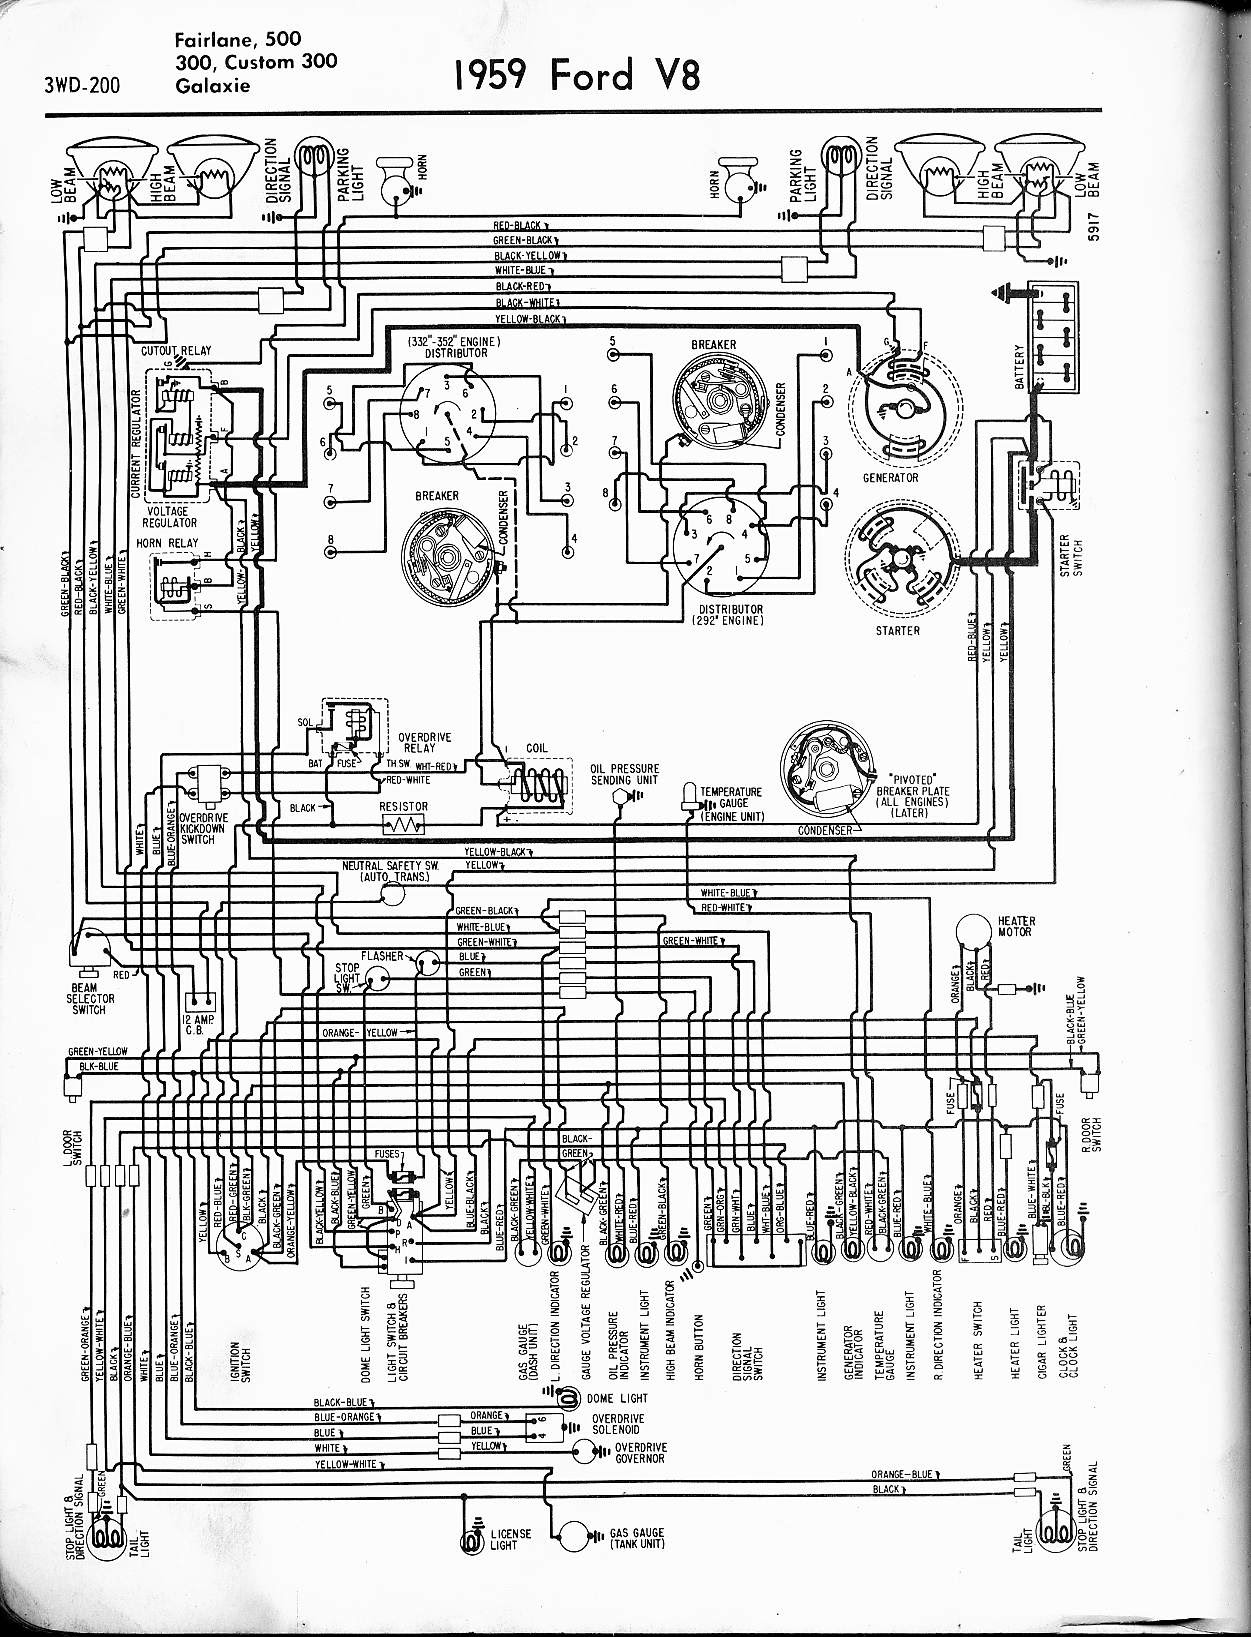 1969 Ford Fairlane Wiring Diagram Ship Engine Diagram For Wiring Diagram Schematics